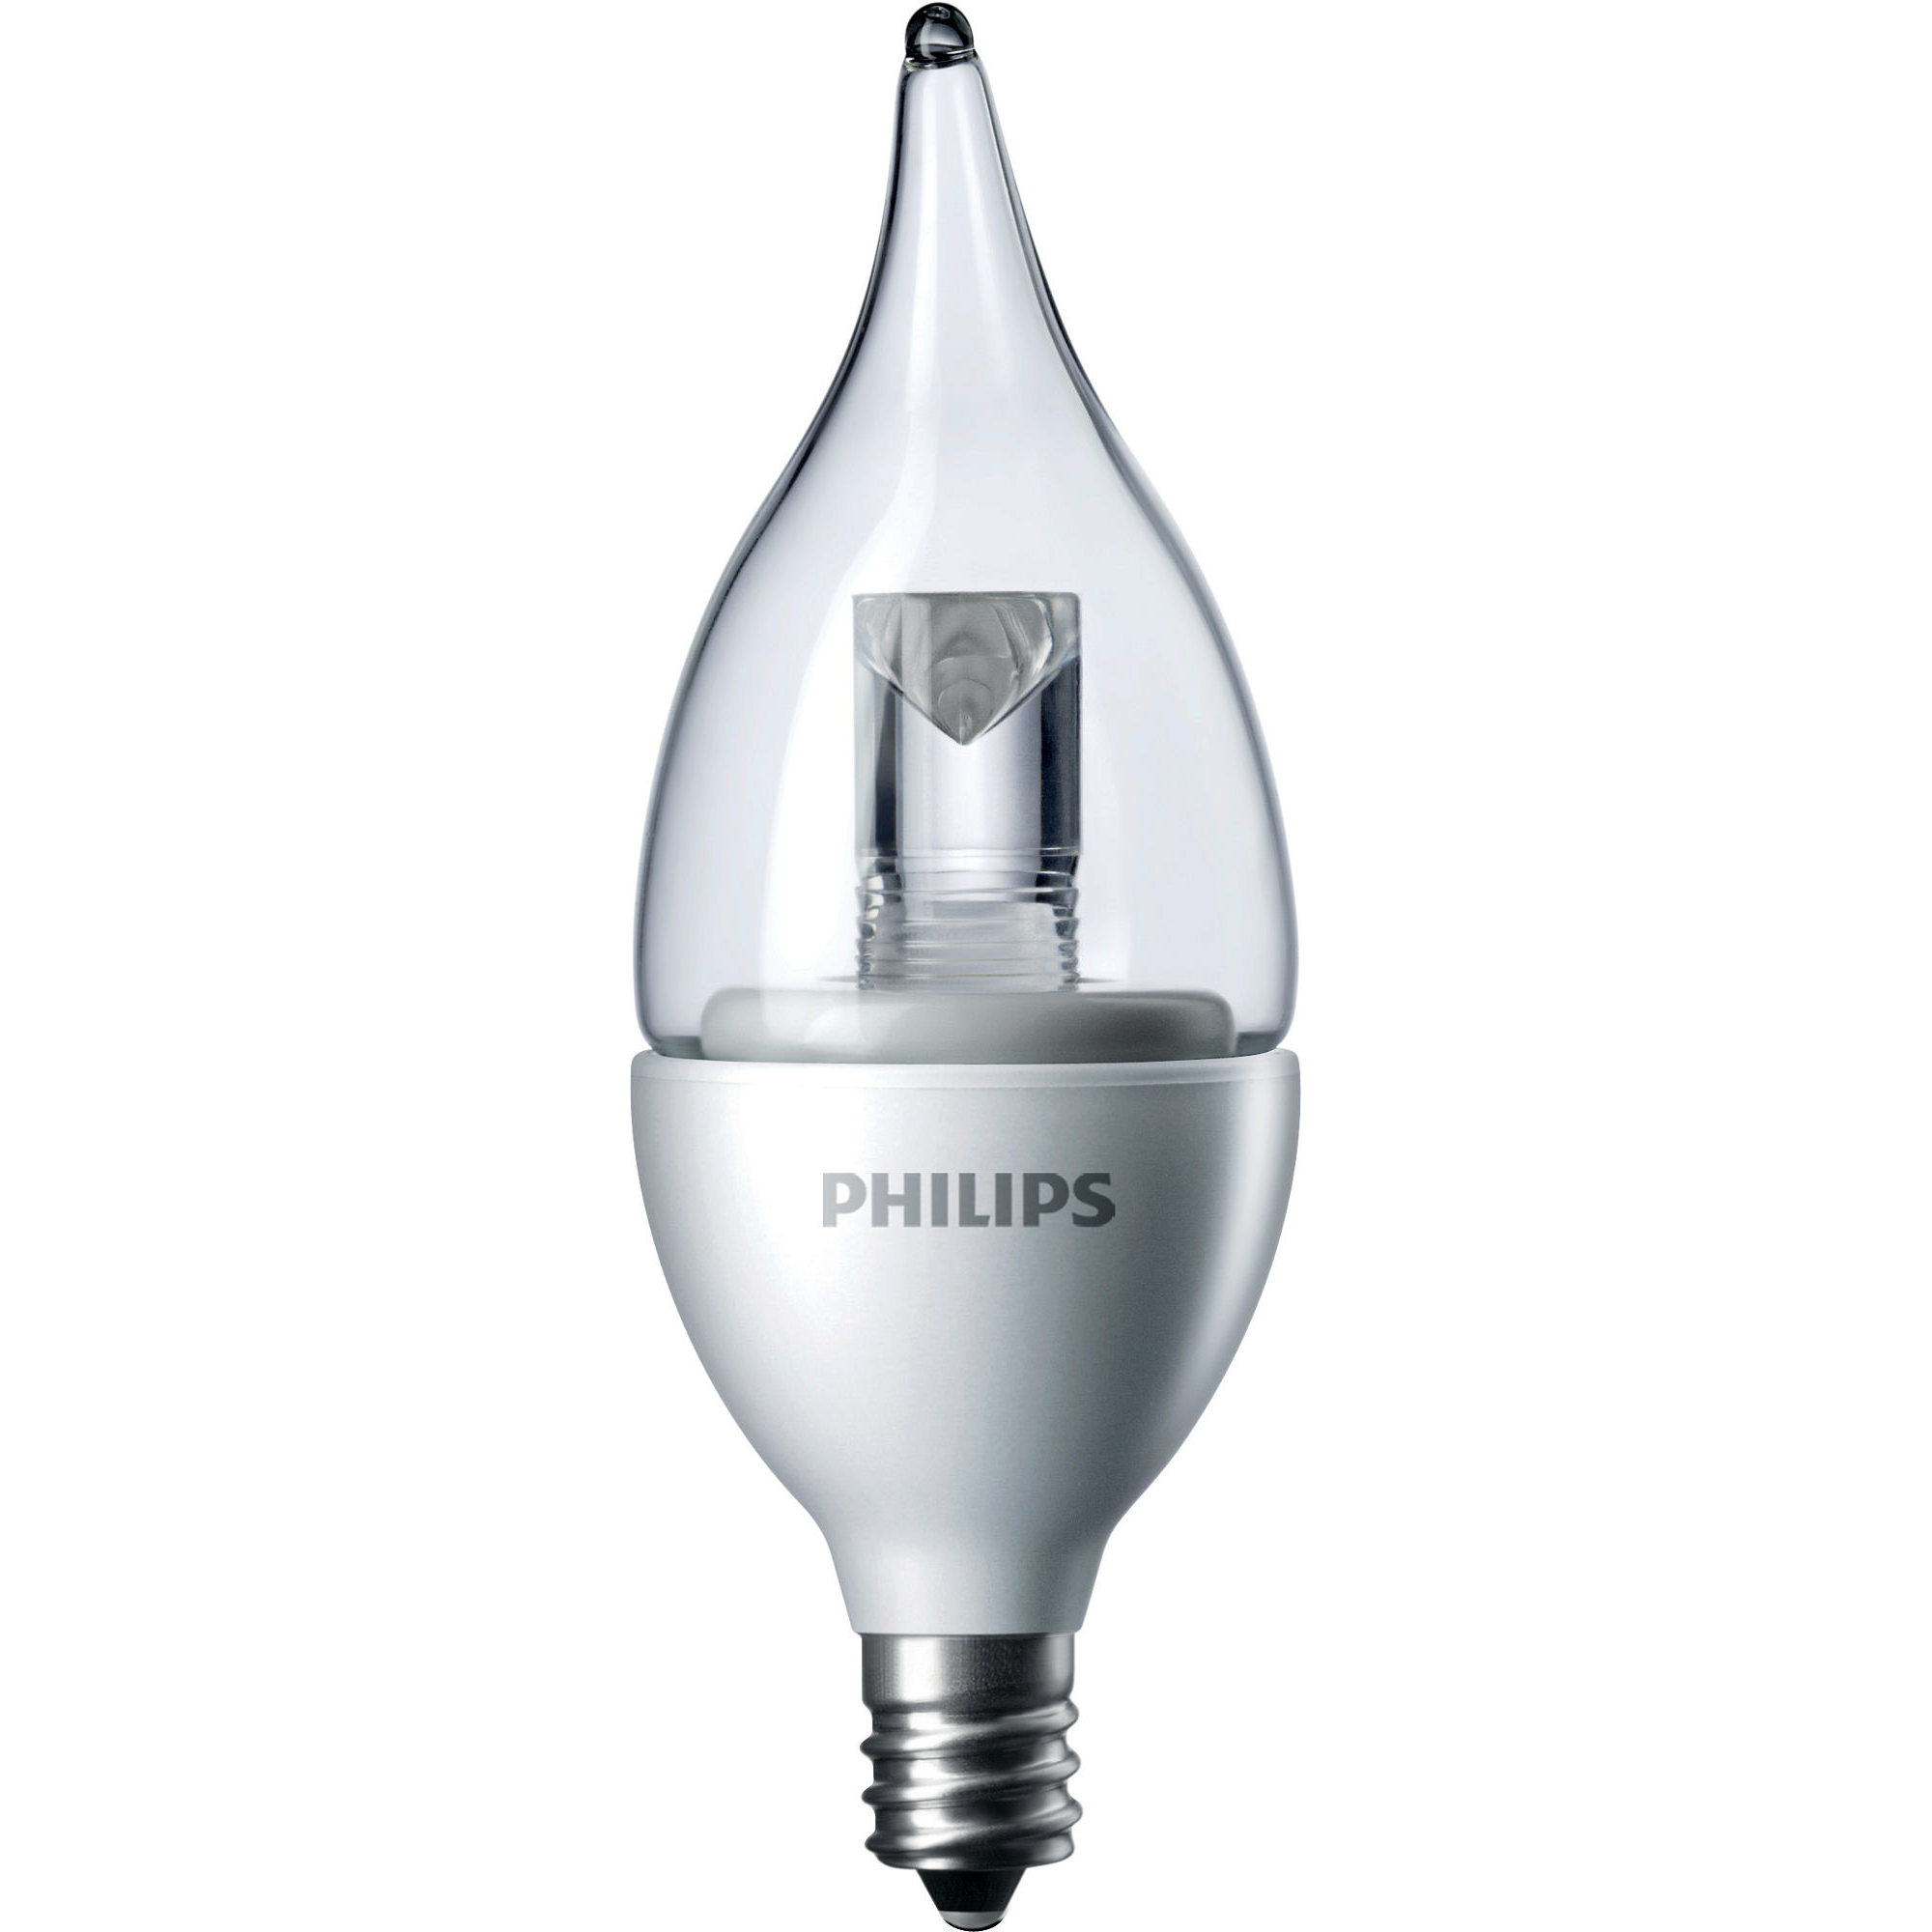 quarter press corpcomms high news w about download bulb philips a classic res announces center image results its led light lighting archive first on